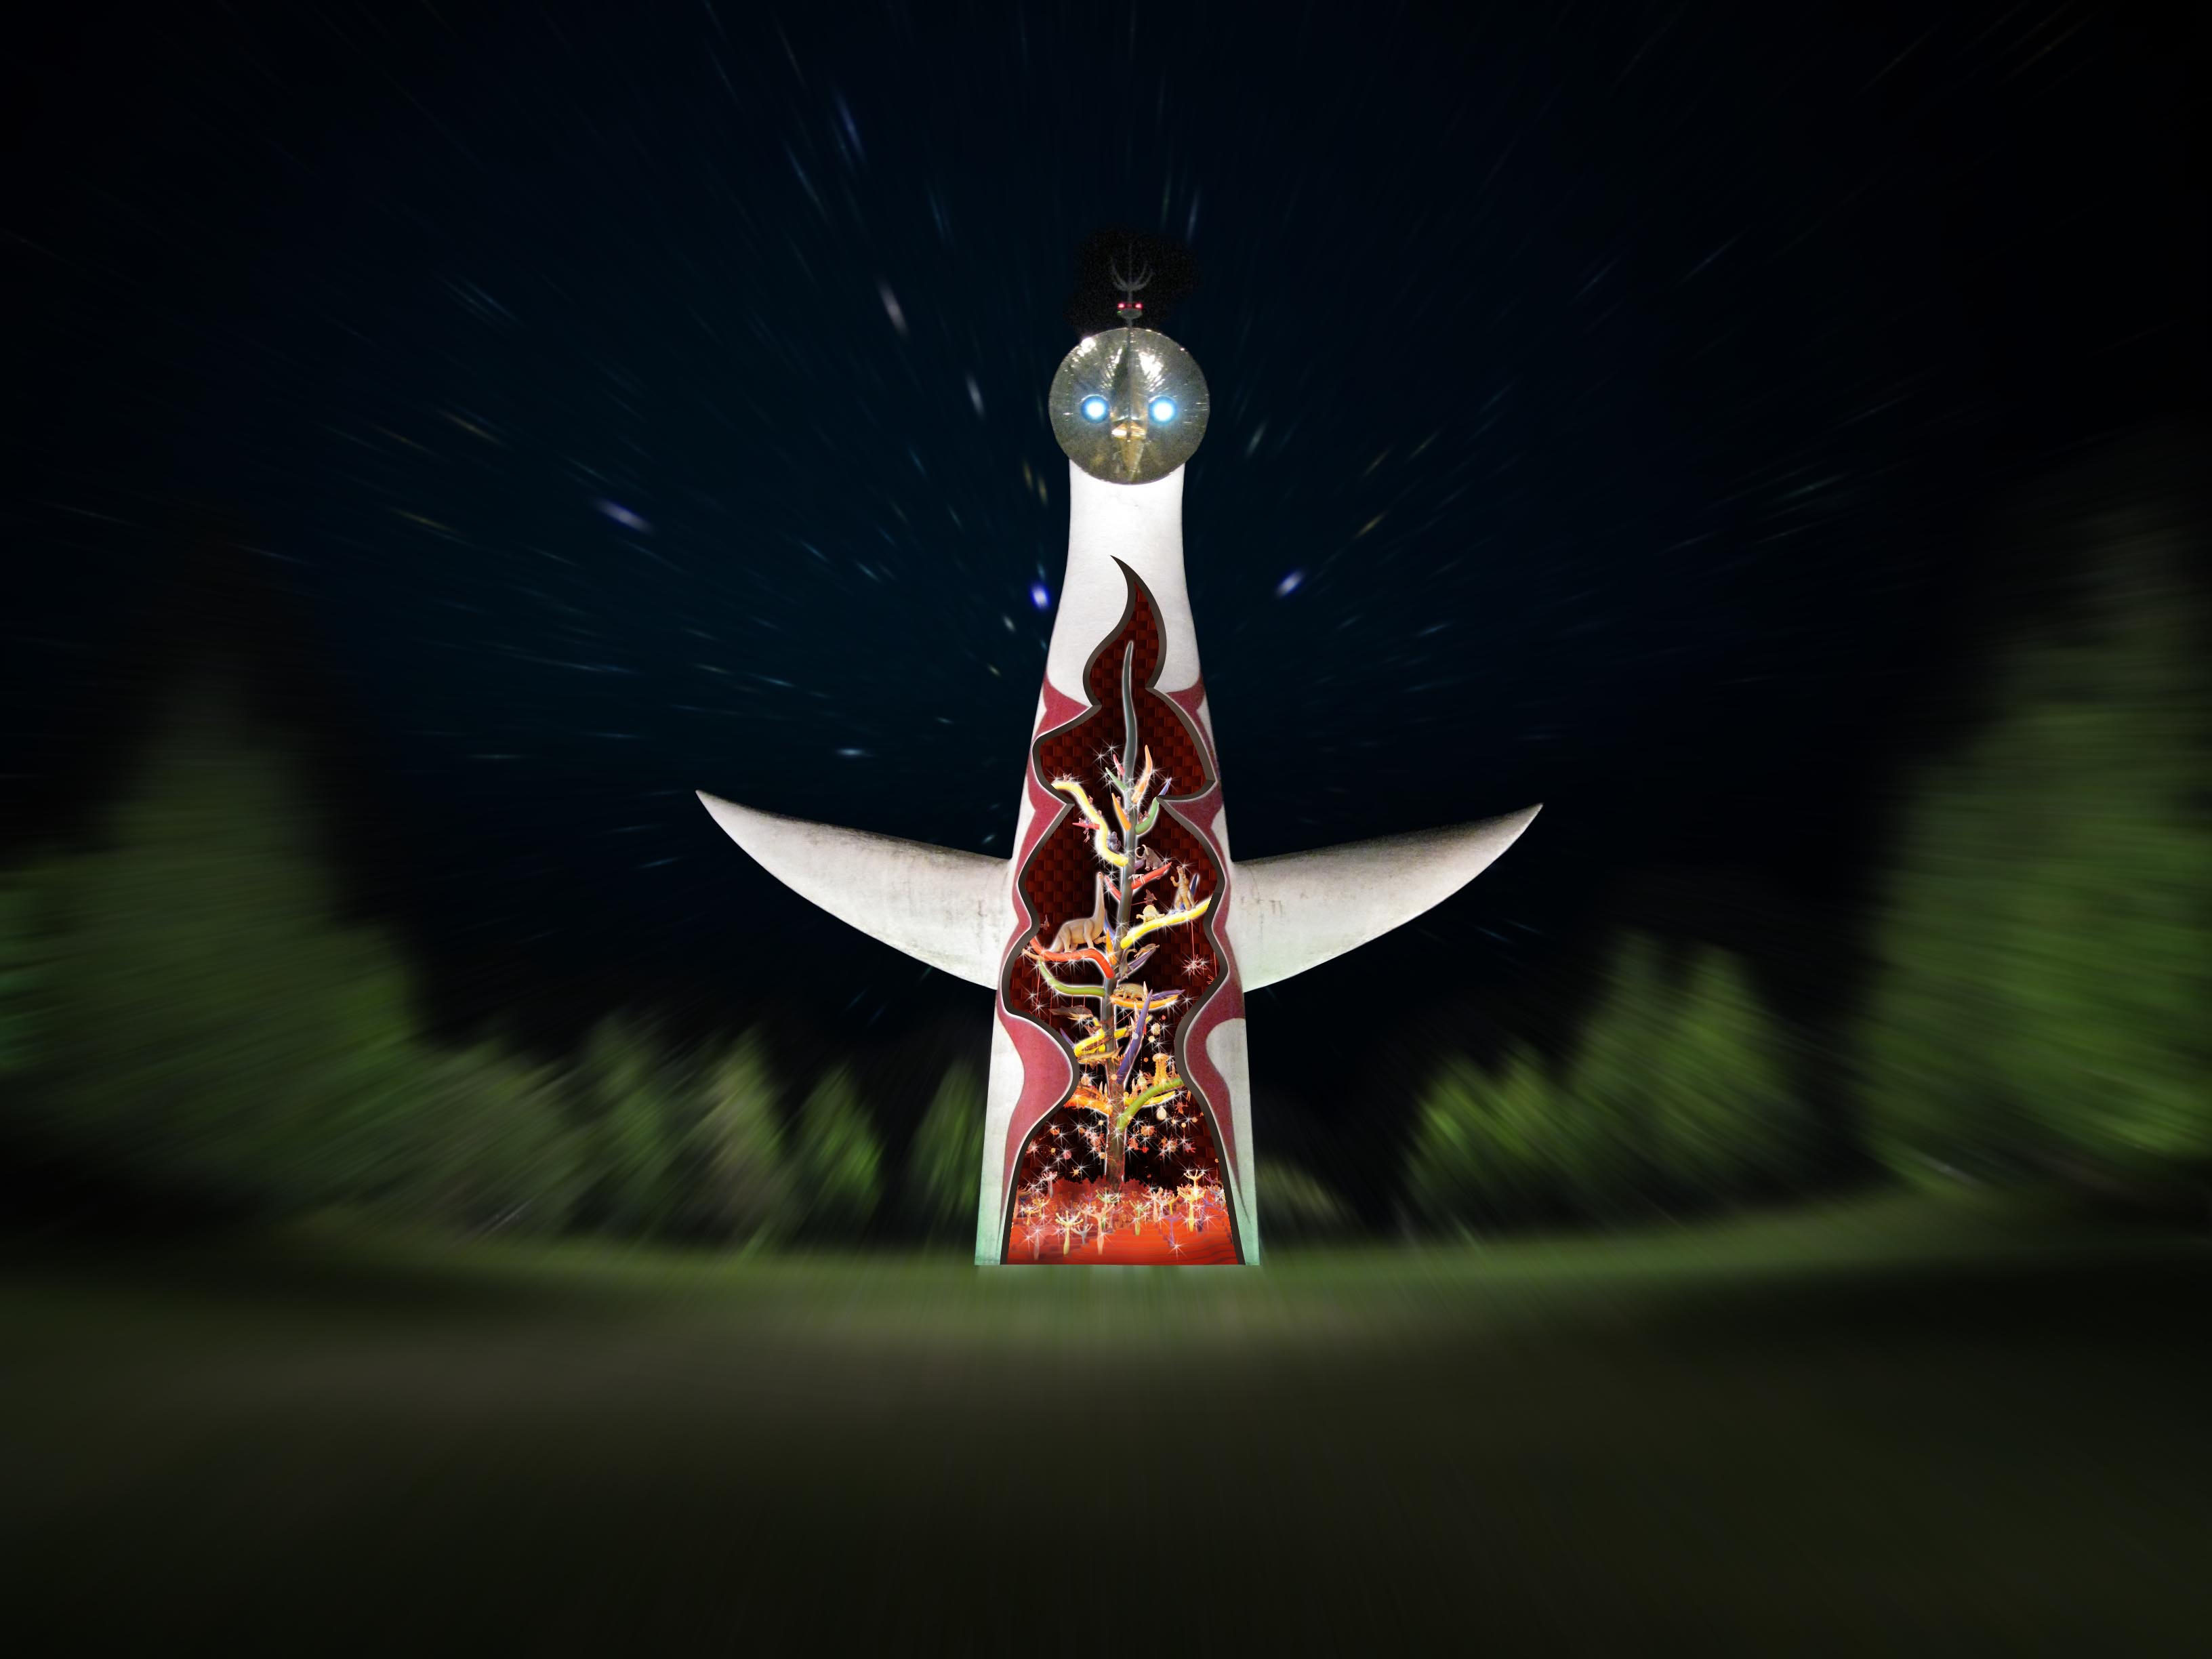 Holiday tower: Artist Taro Okamoto's 'Tower of the Sun' in Osaka gets decorated with animated projections this holiday season.